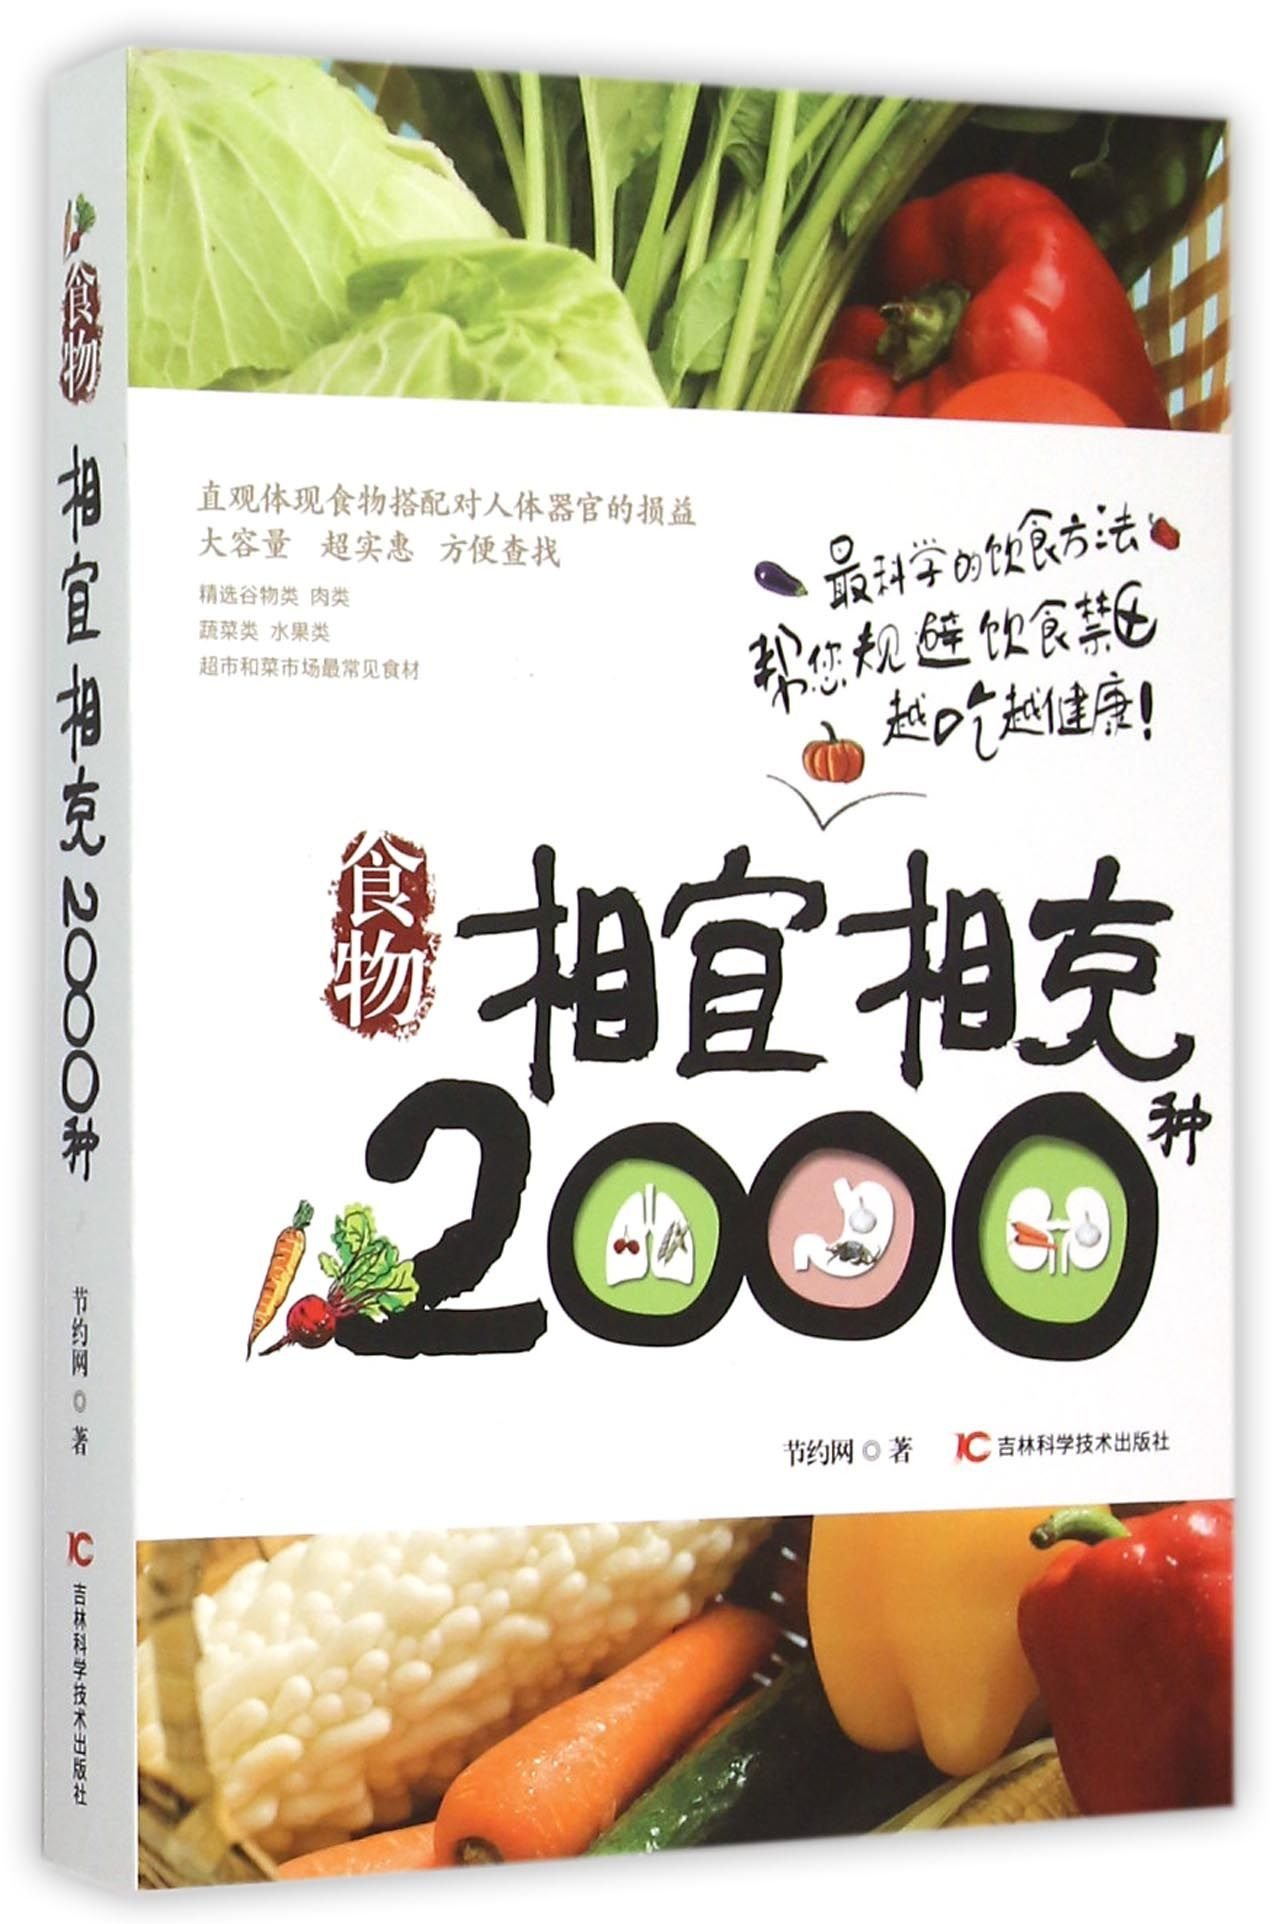 Download 2000 Cases of Suitable Matching and Inter-Restriction of Food (Chinese Edition) ebook